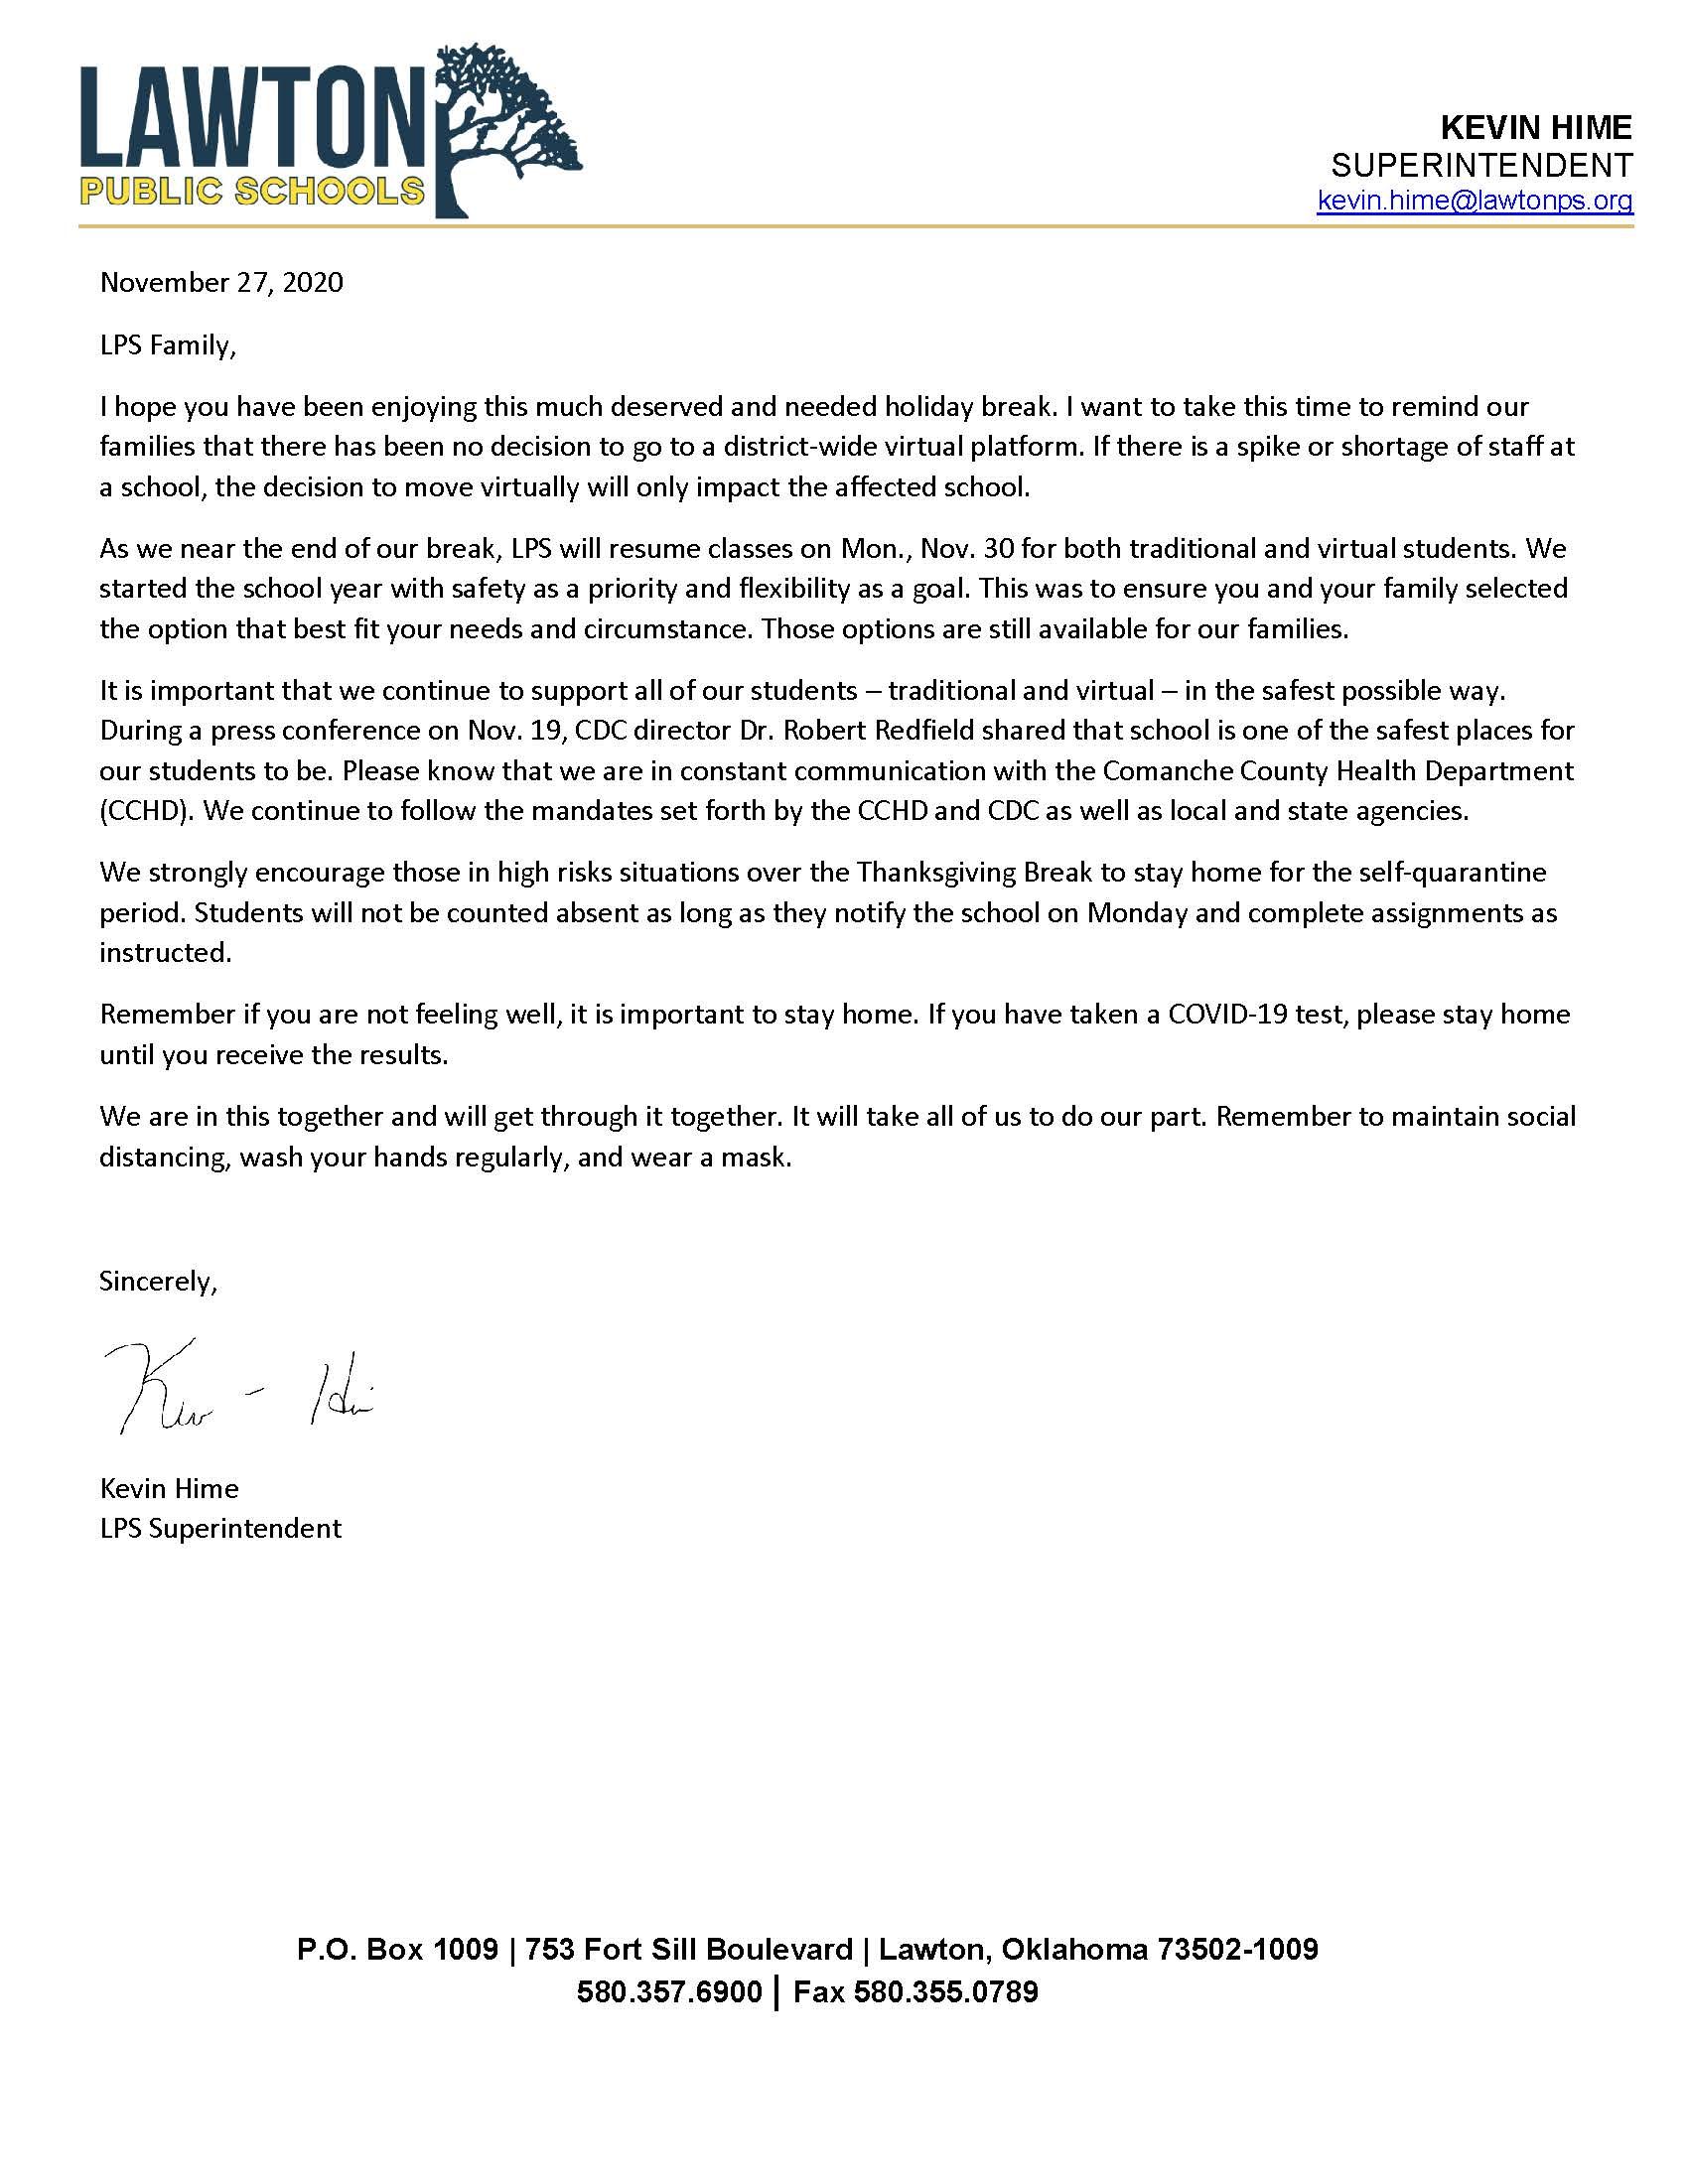 Letter from Superintendent Hime